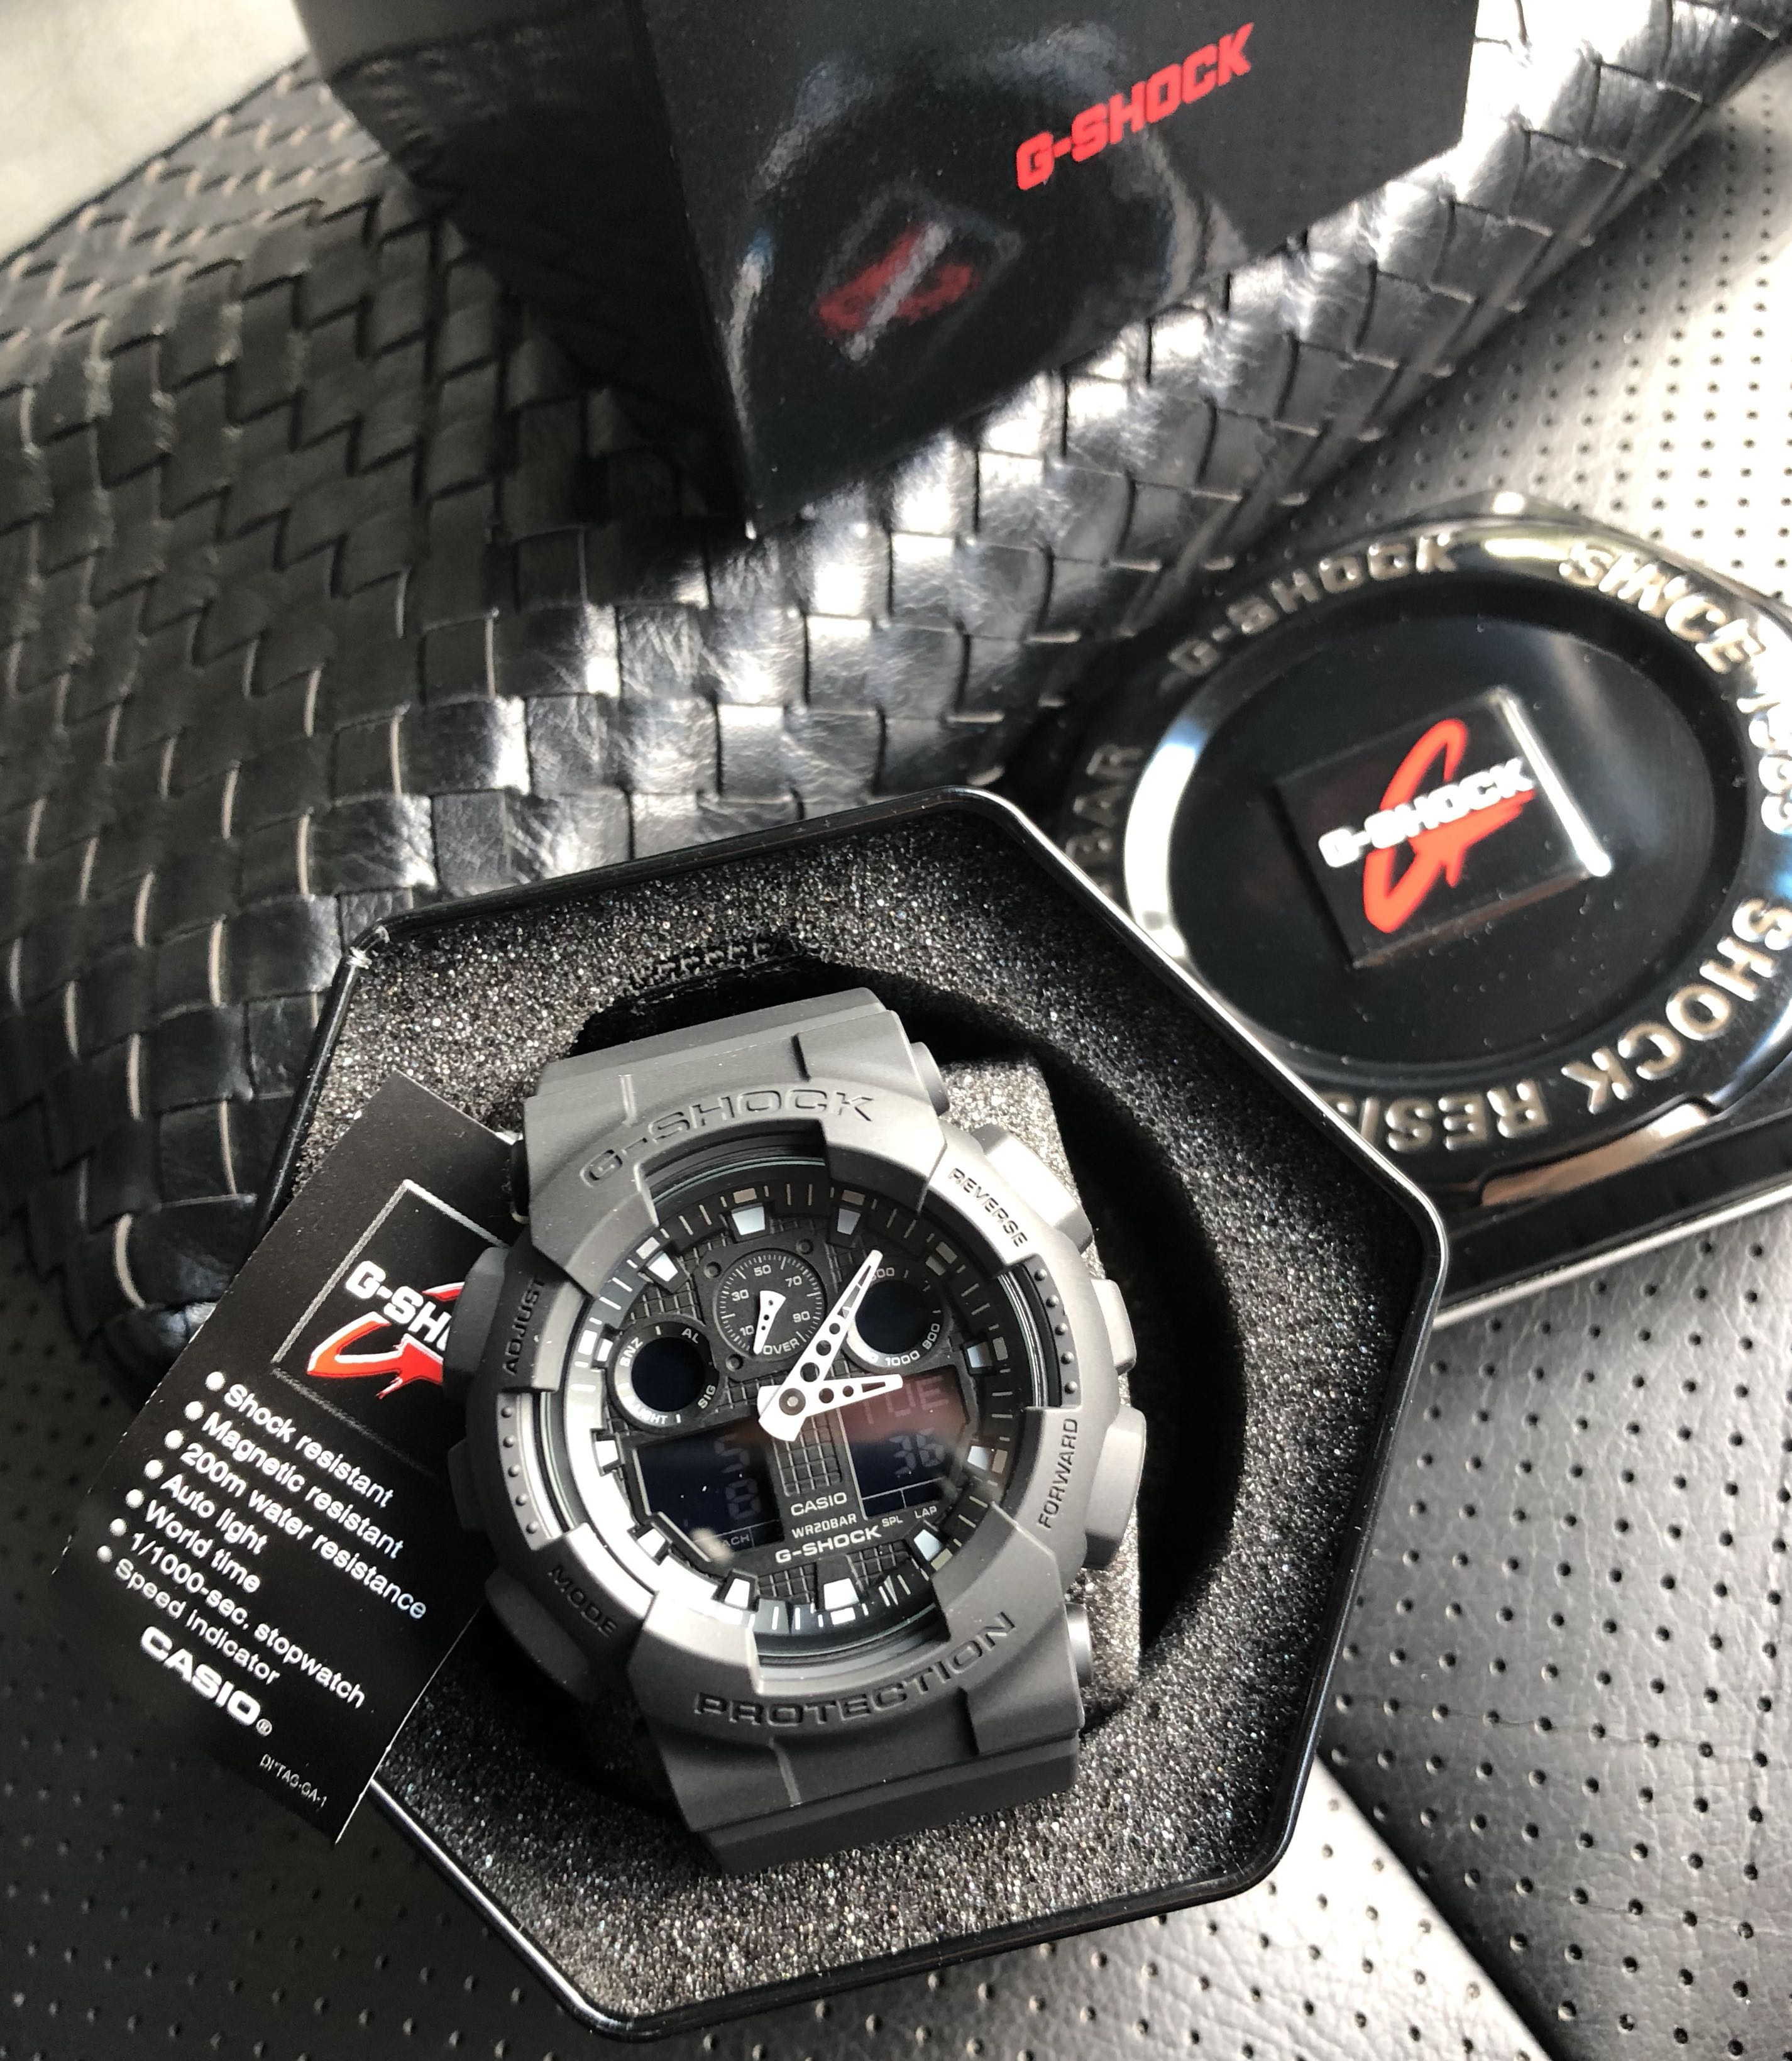 Authentic Original Ga 100bbn G Shock Cordura Nylon Band Stealth Casio World Time Ae 1200whd 1a Black Sale Offer Brand New Full Box Limited Stock First Come Served